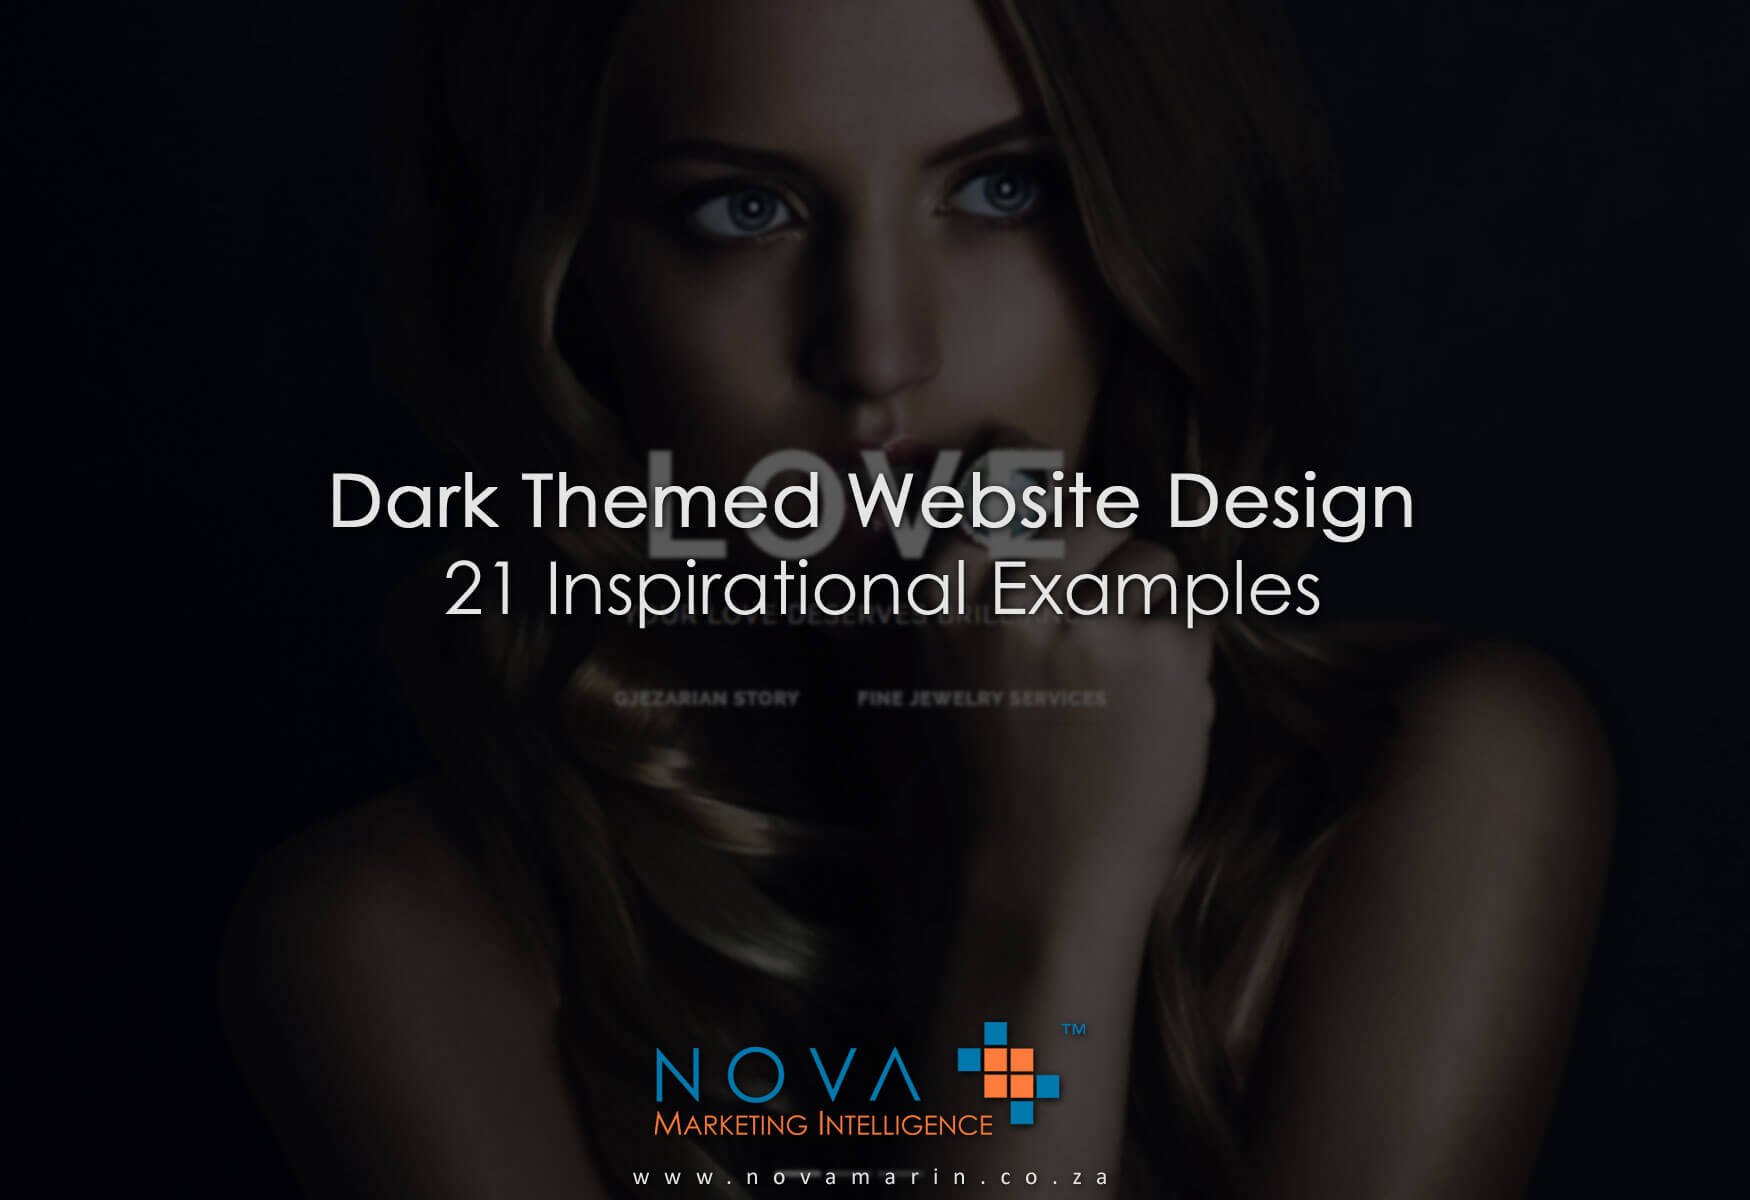 Dark Themed Website Design: 21 Inspirational Examples